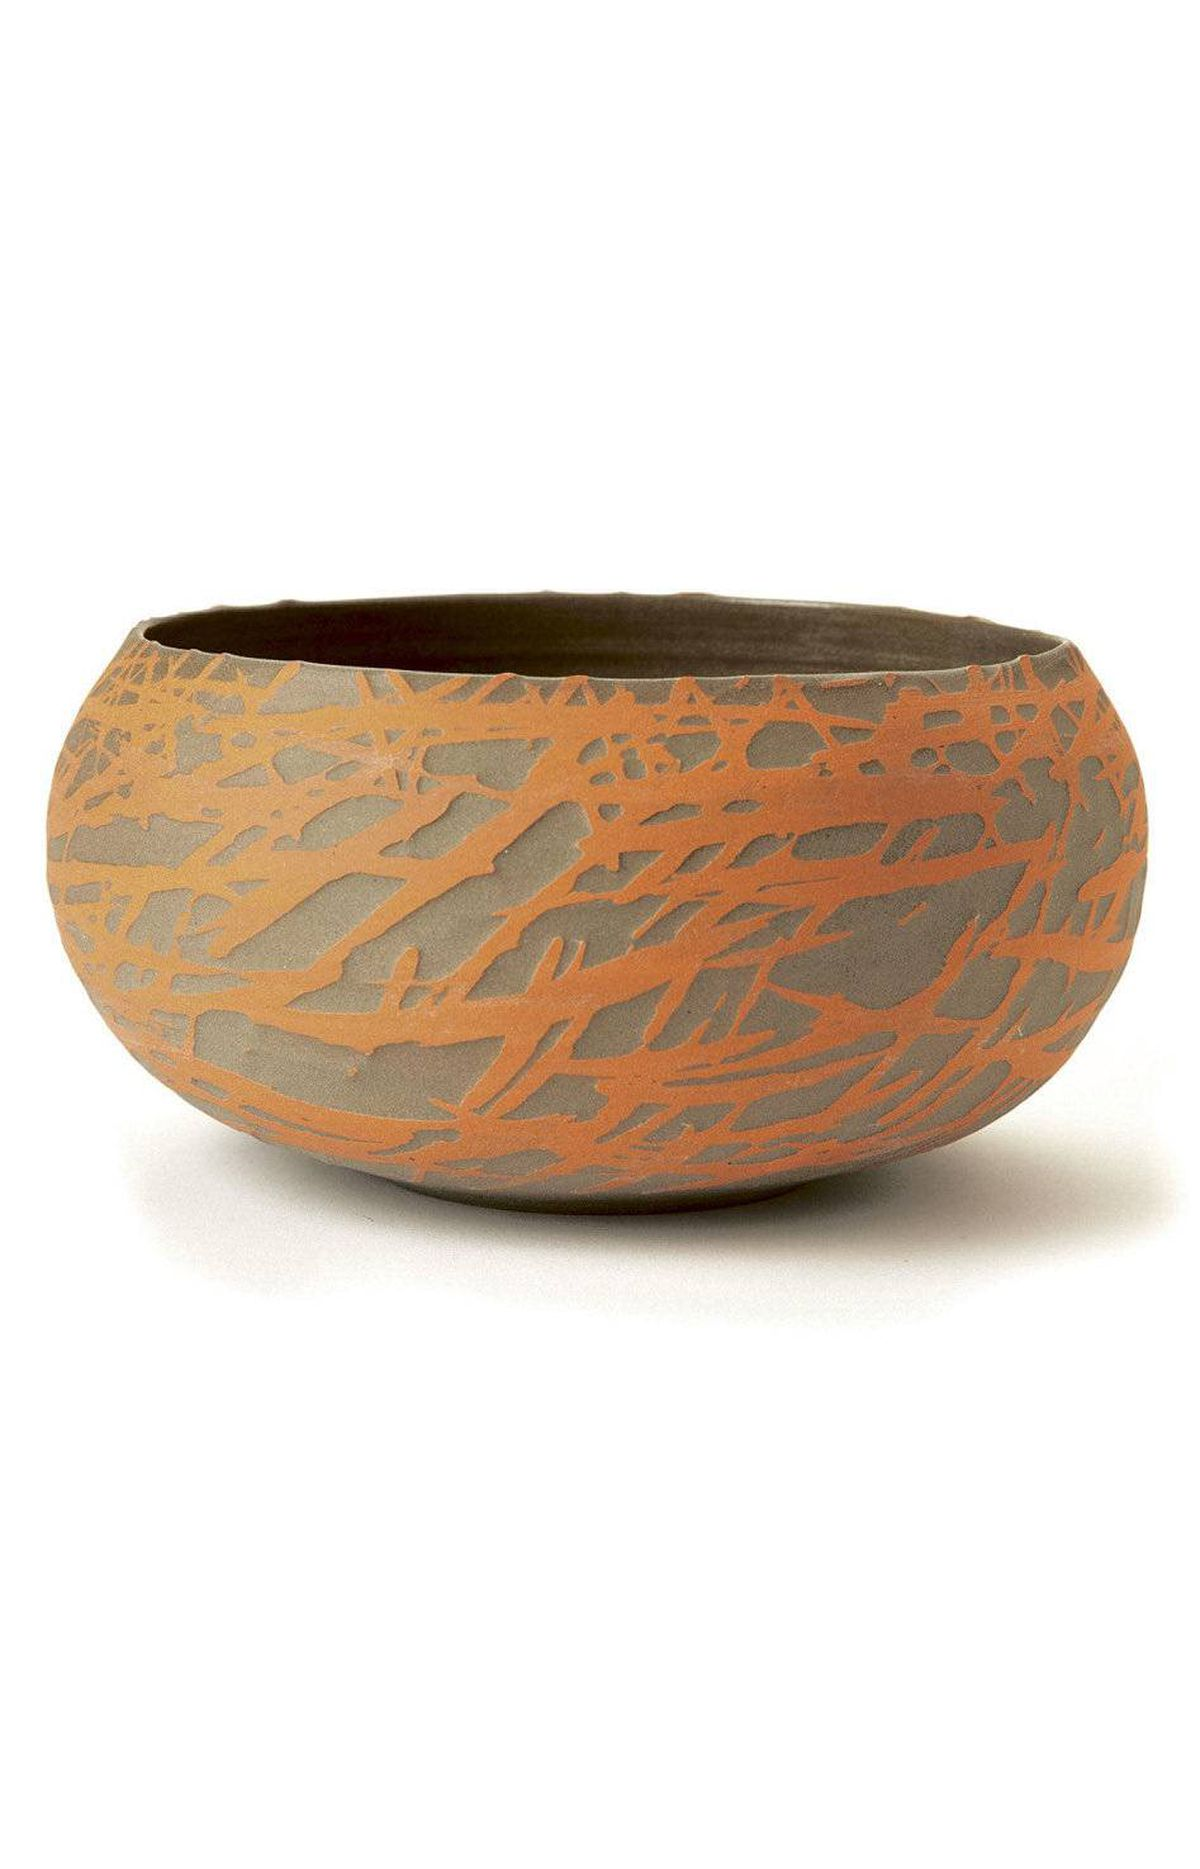 EDGY ETCHING Kline bowls, from $85 at galleries across Ontario and through www.shanenorrie.com.